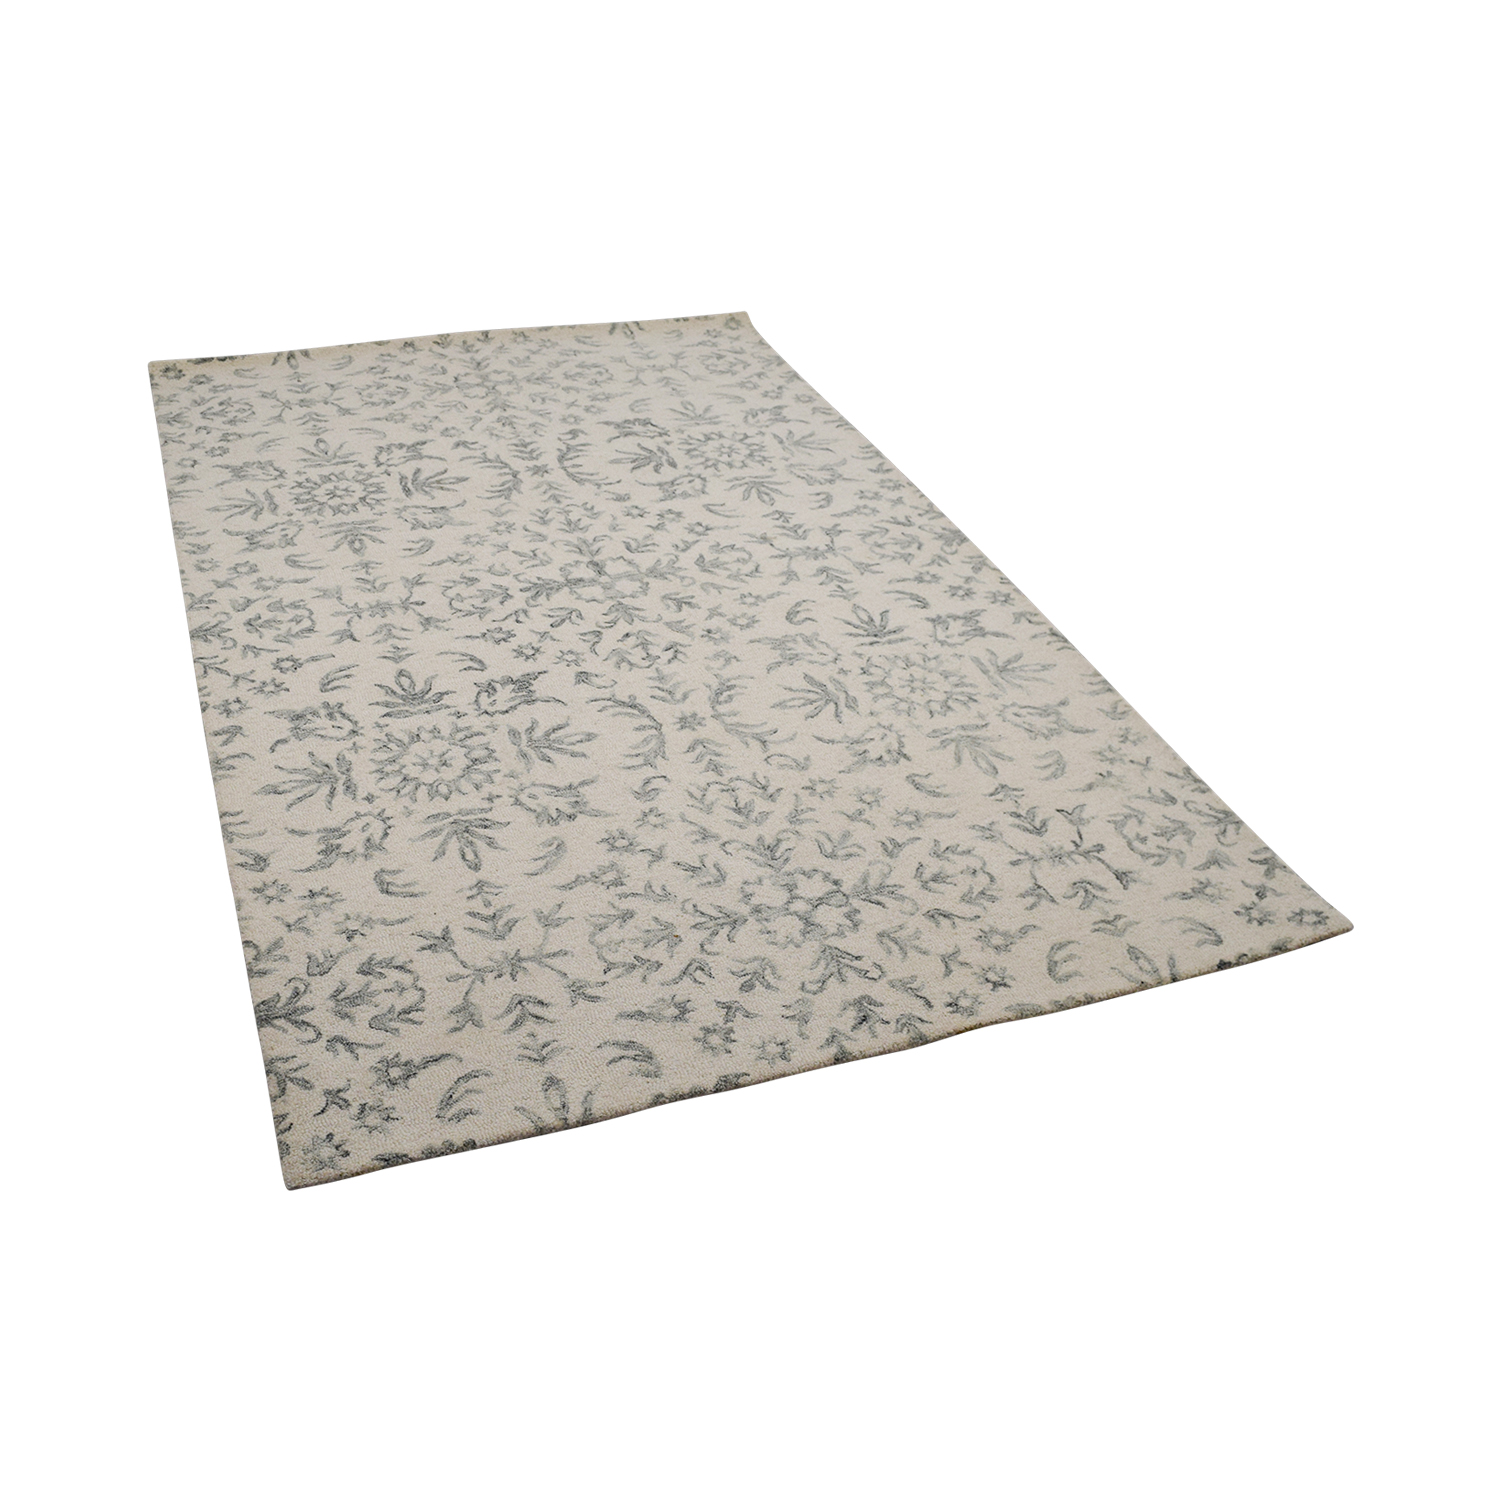 shop Obeetee White and Light Gray Rug Obeetee